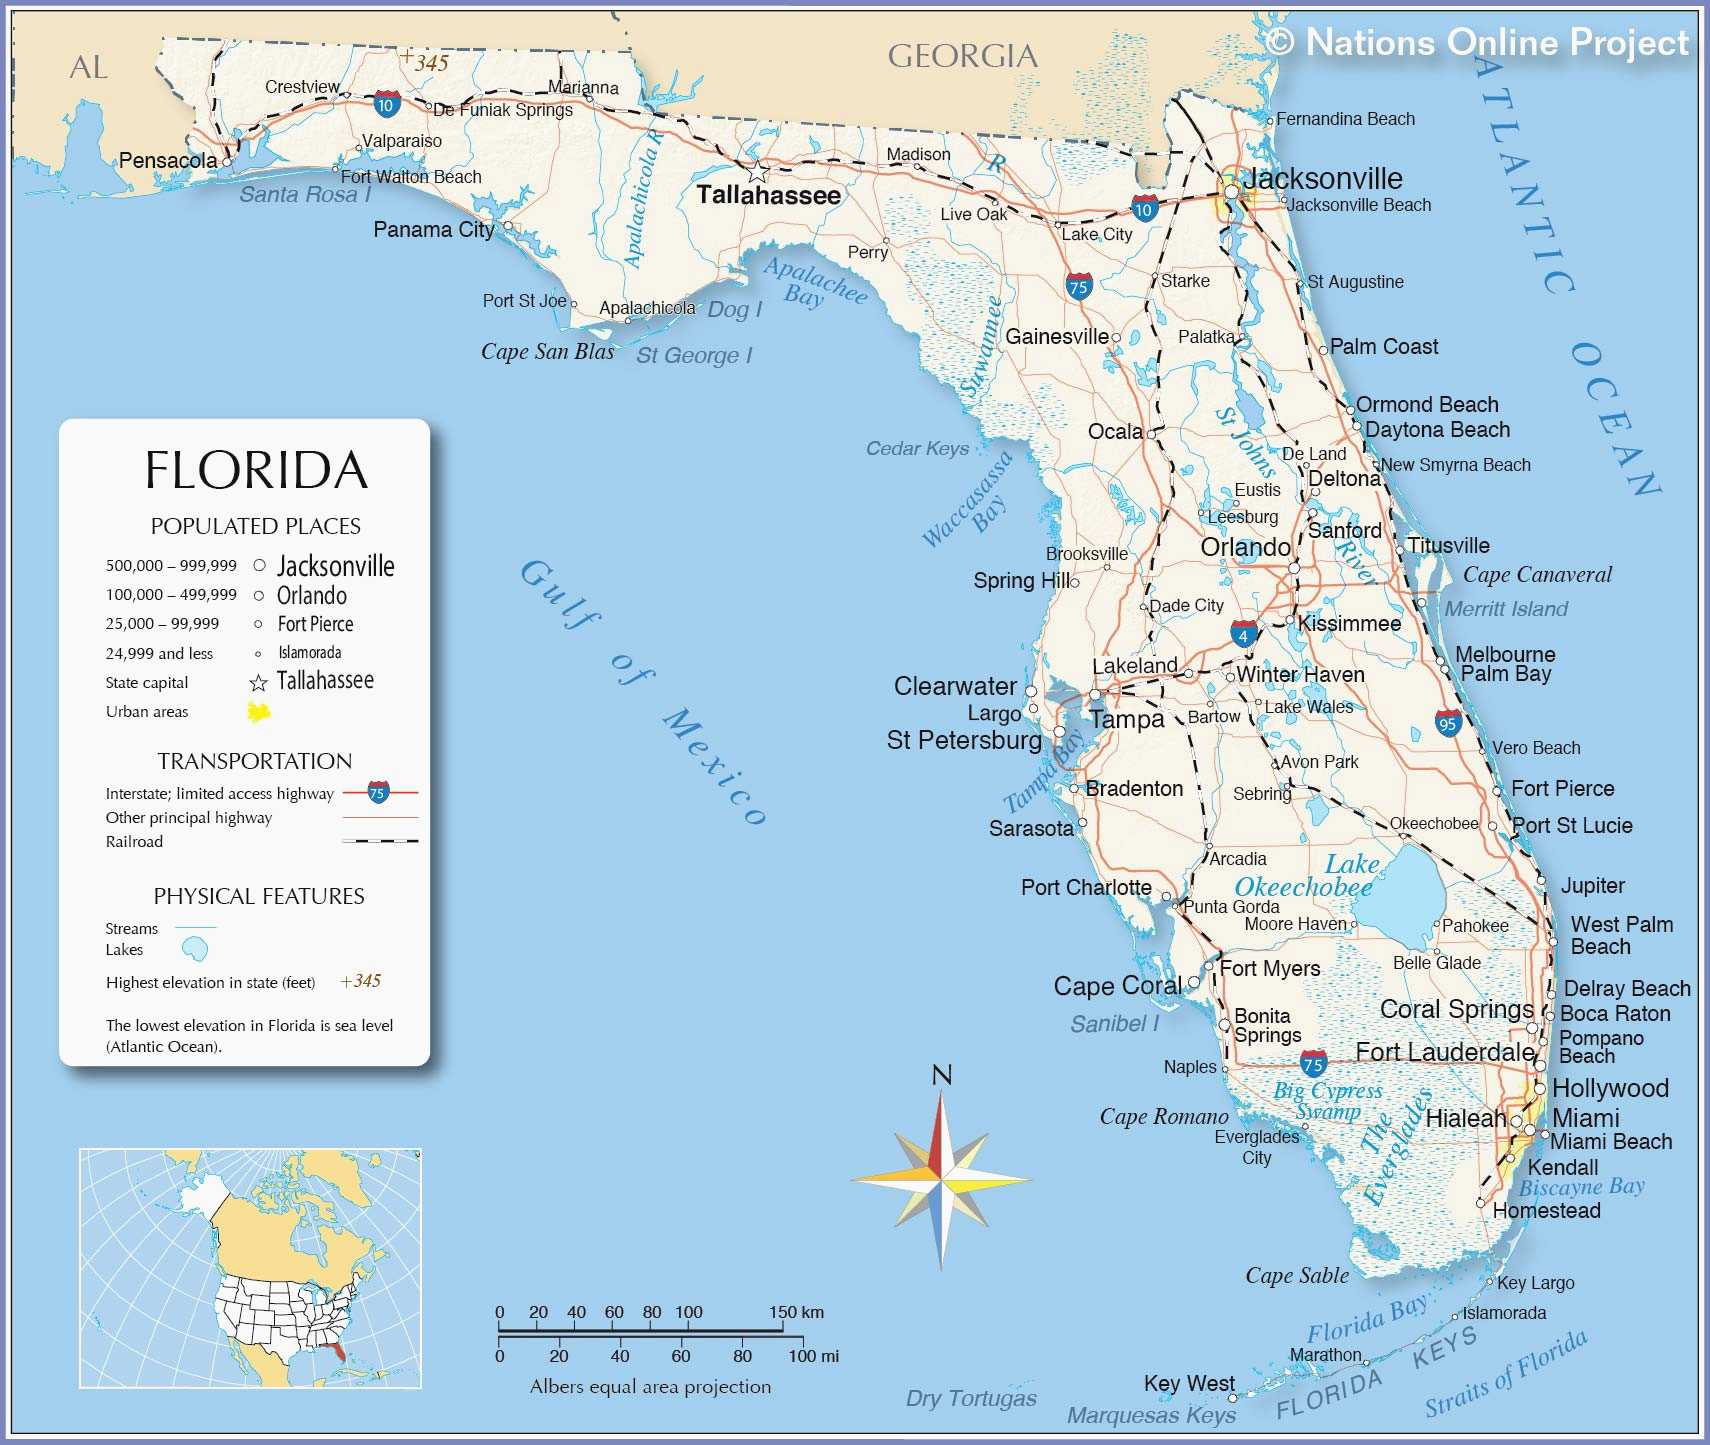 Map Of Florida East Coast Beach Towns Fresh East Coast Florida Map - Map Of Florida East Coast Beach Towns